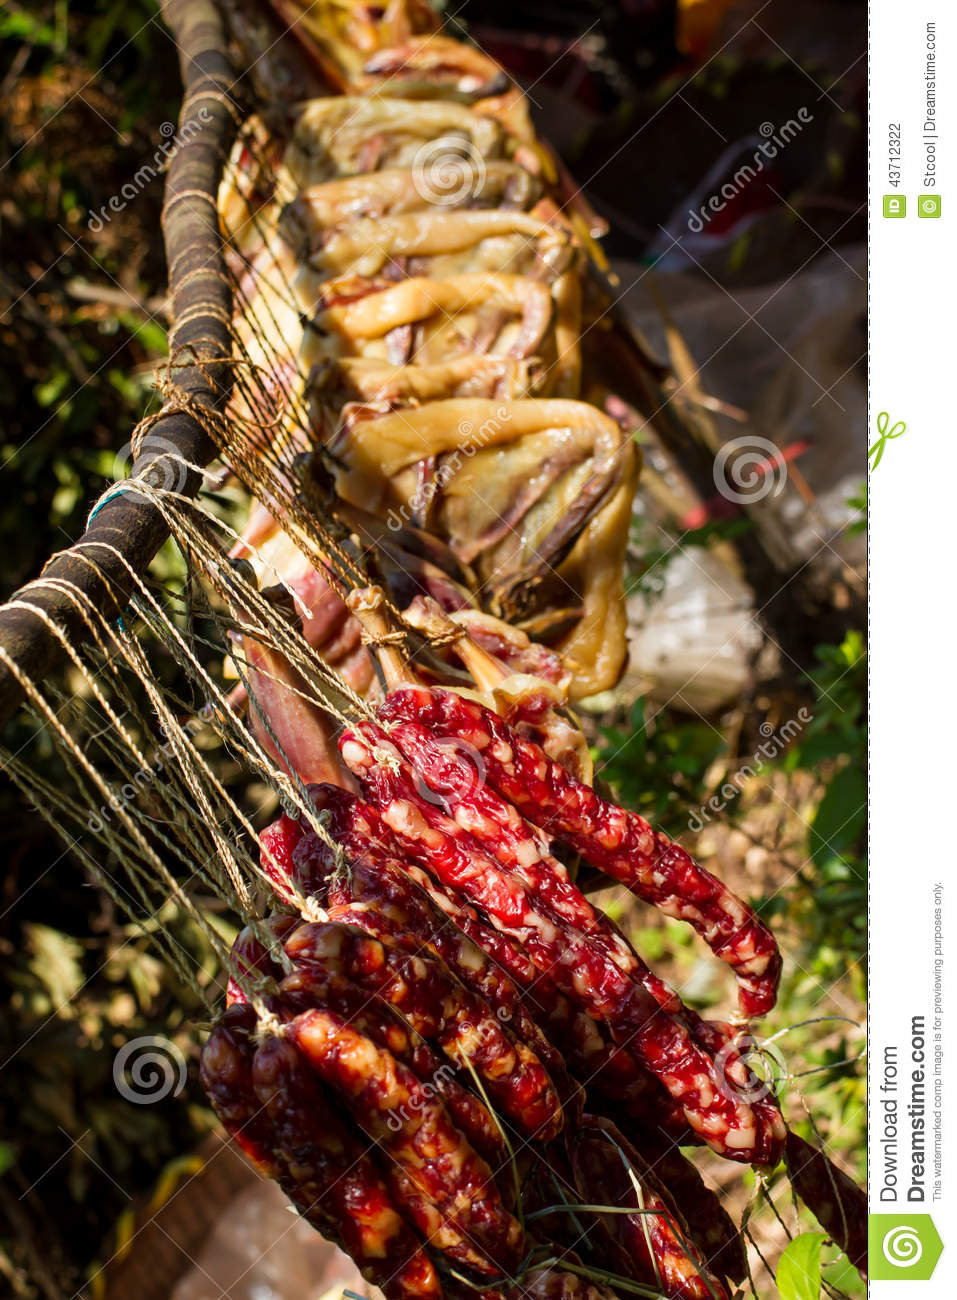 Preserved meat